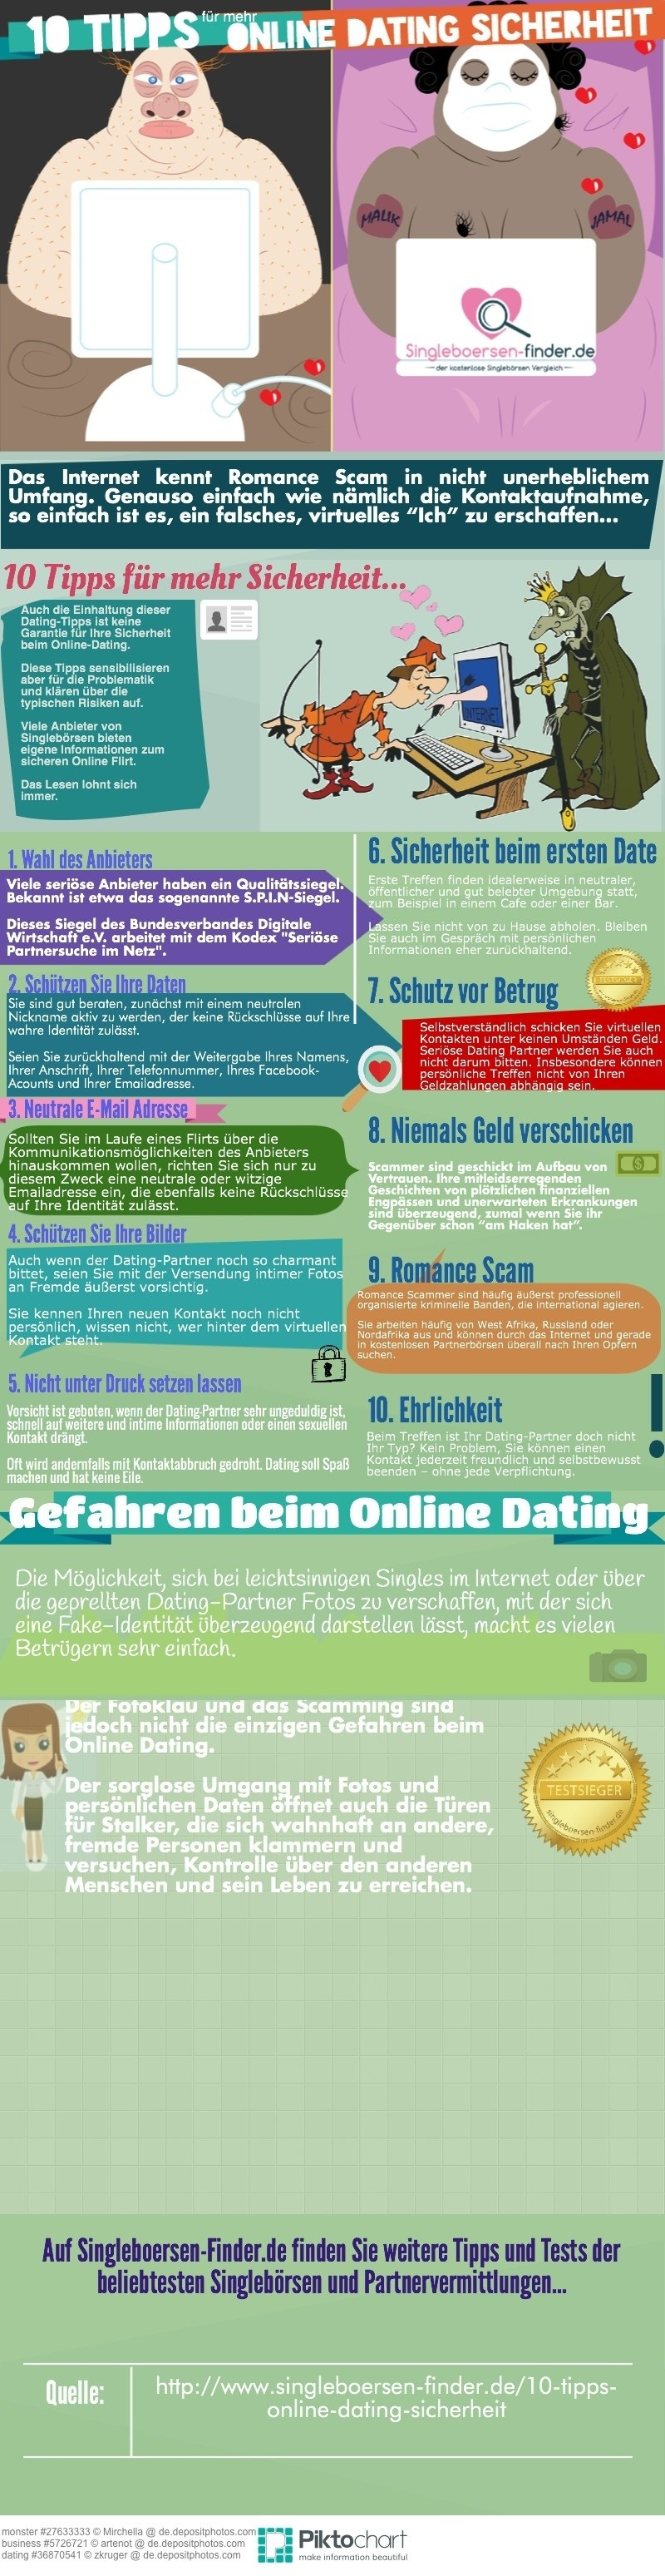 Online-Dating-Betrug nigerisch Wann entriegelt sich die Datierung in hollywood u